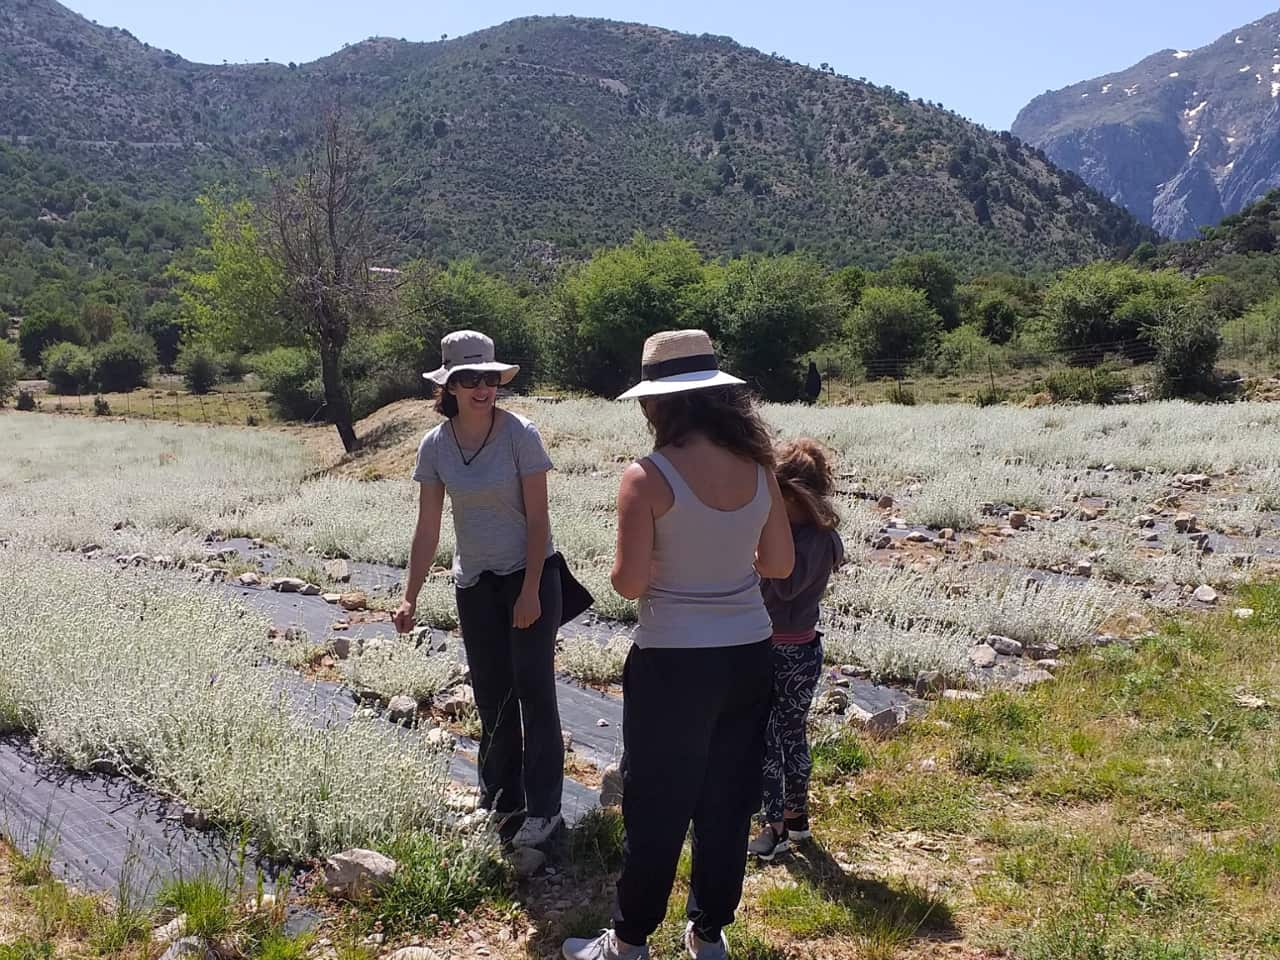 Discovering The Organic Herbs & Flavors Of Crete At Omalos Plateau Of Crete, organic herbs workshop chania crete, organic tea workshop chania crete, best activities chania crete, bio herbs workshop crete, visit an organic farm chania crete